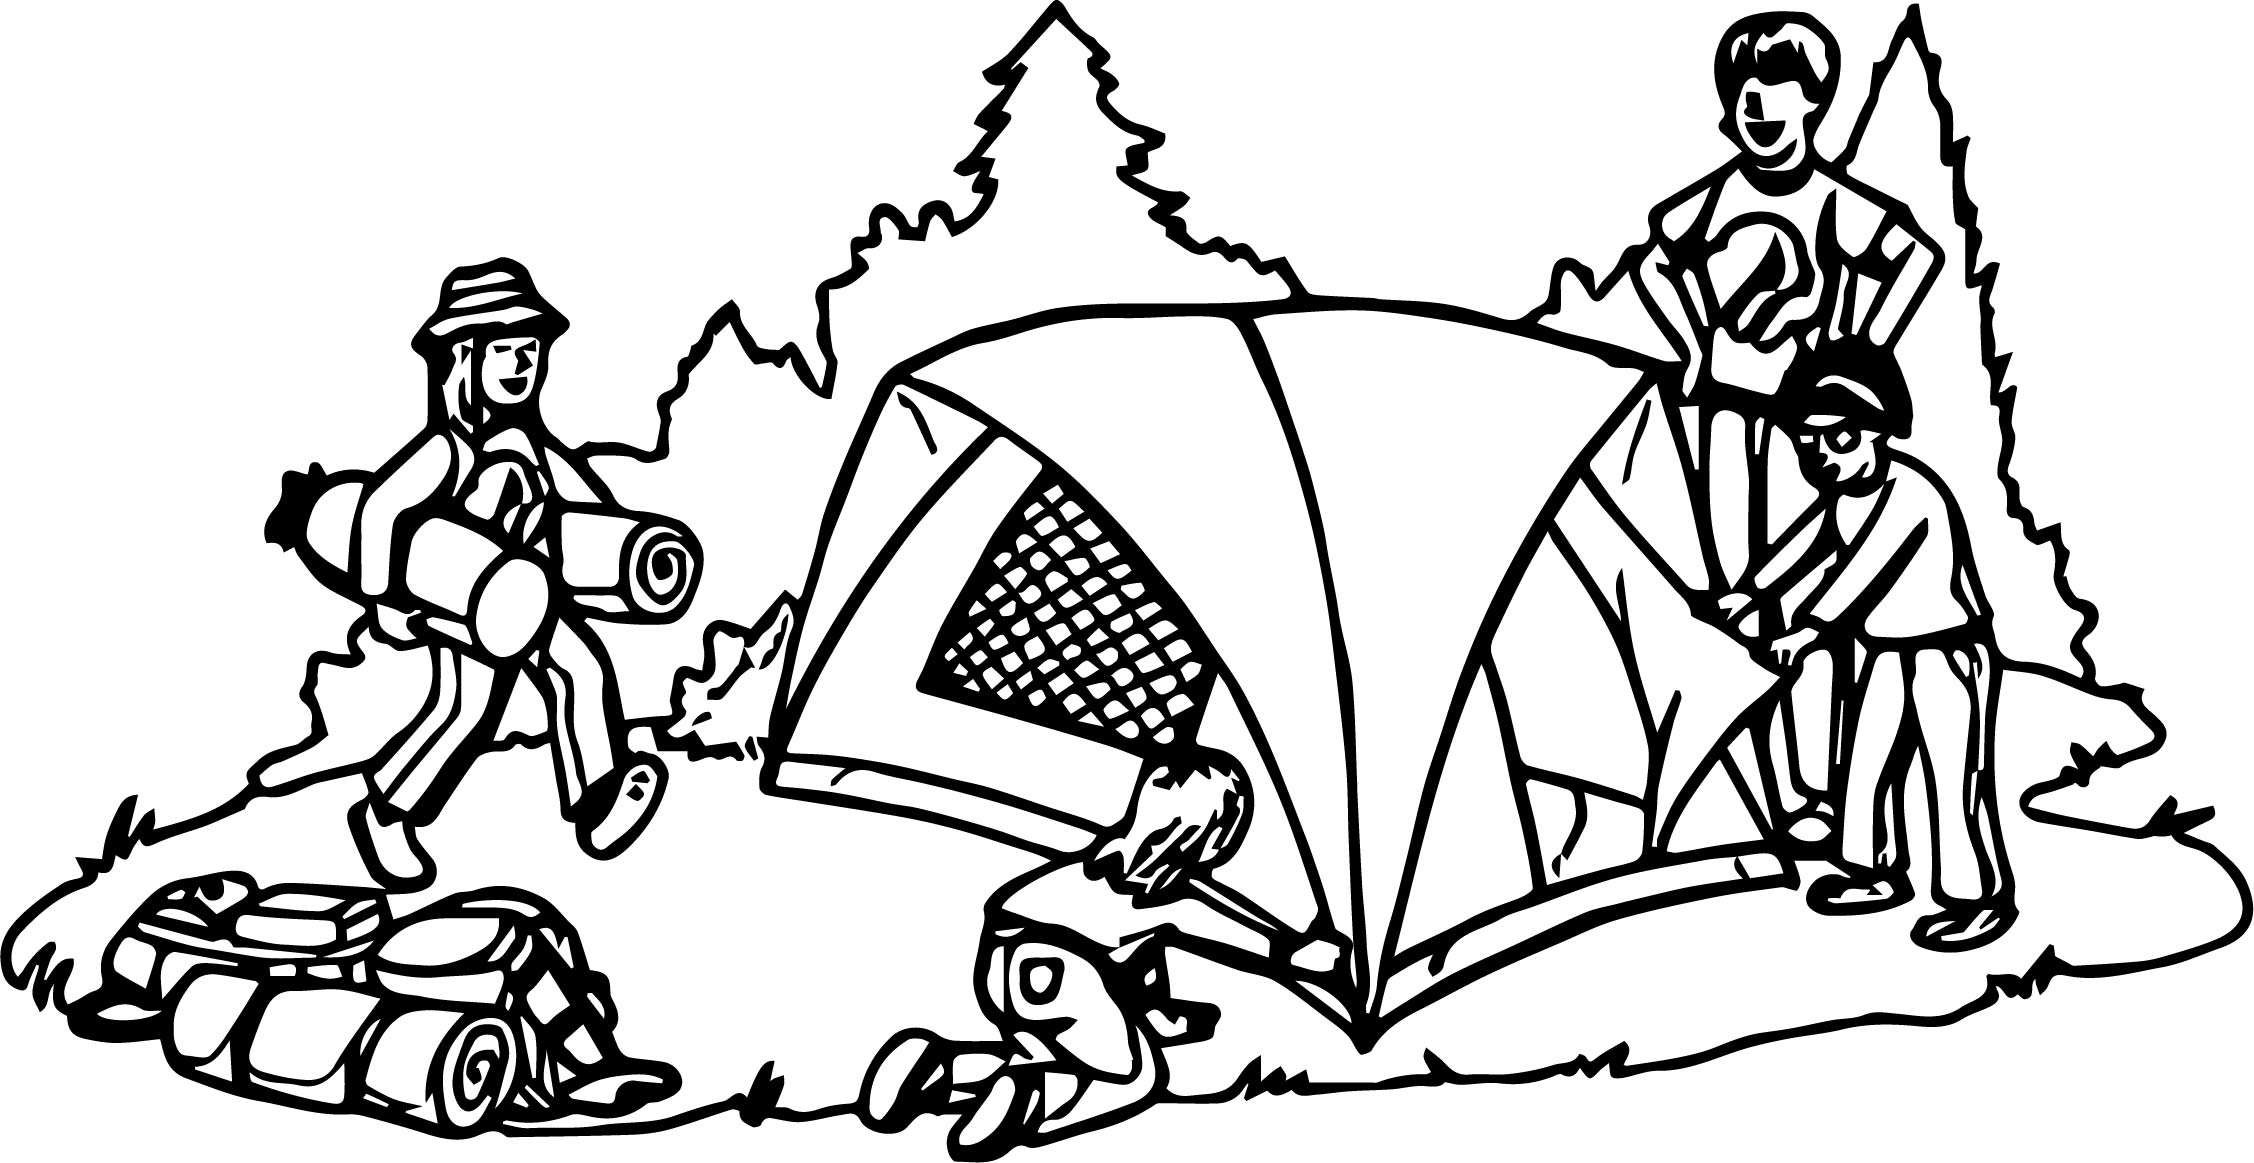 Camp Camping Coloring Page Wecoloringpage Com